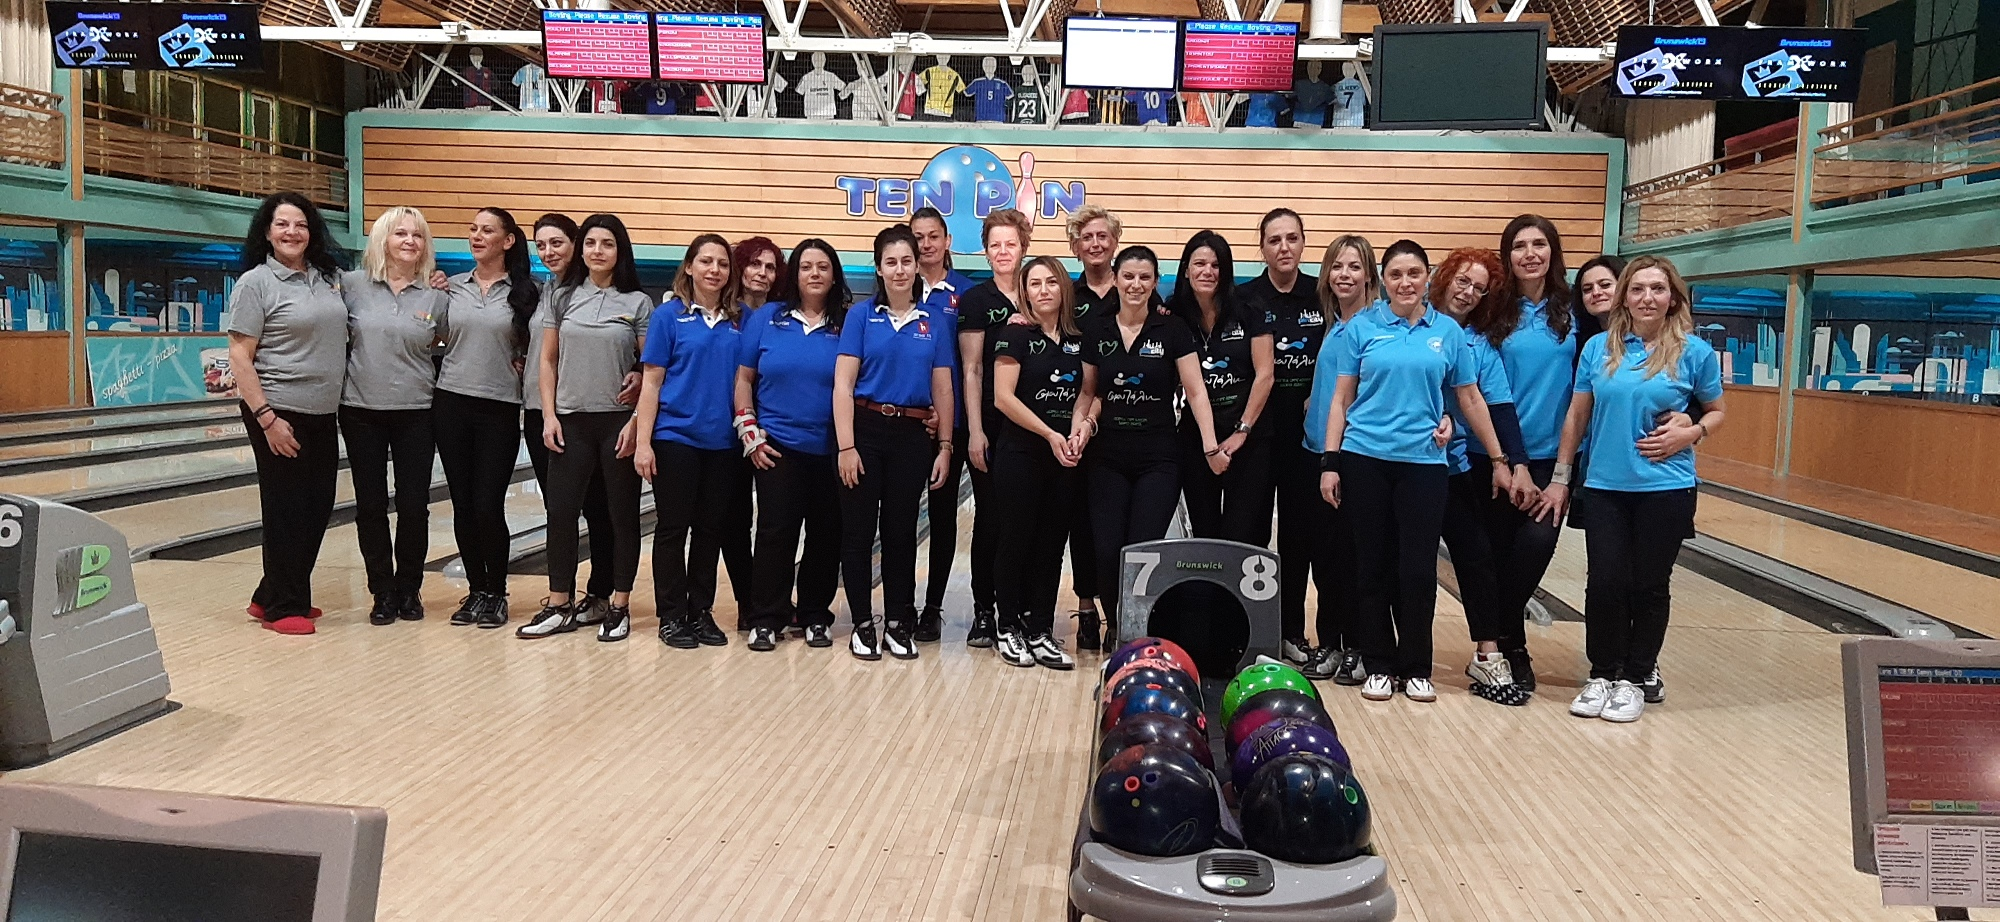 bowling-prokr-omad-2019-2020_5